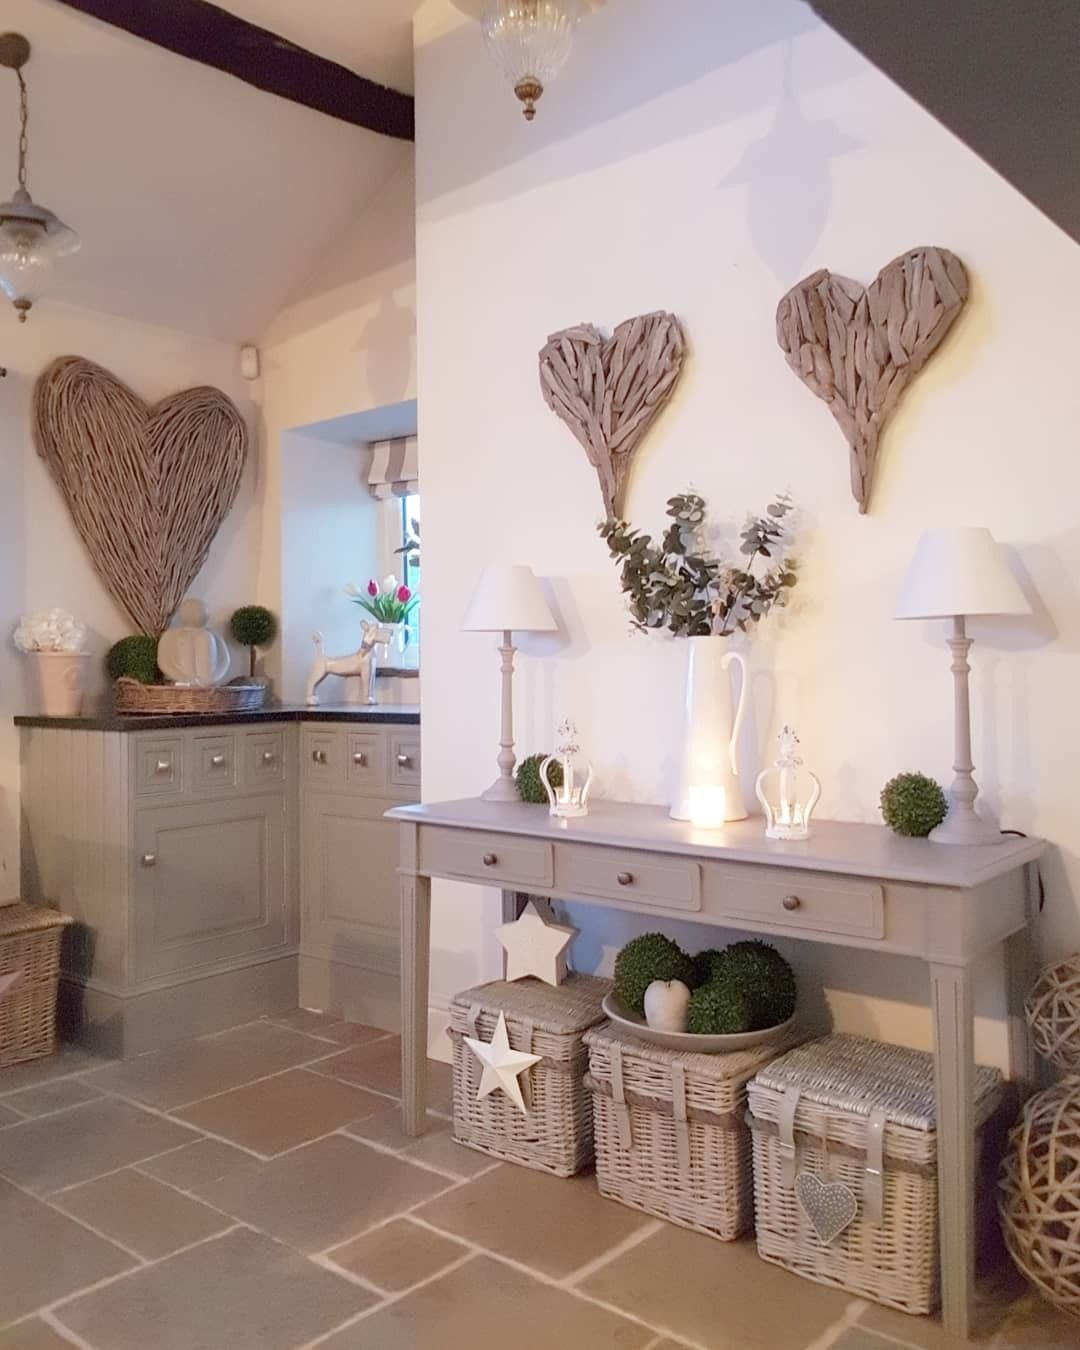 Interesting Facts About Shabby Chic Country Kitchen Design: Pin By Marjorie Lento On Decorating Ideas In 2019